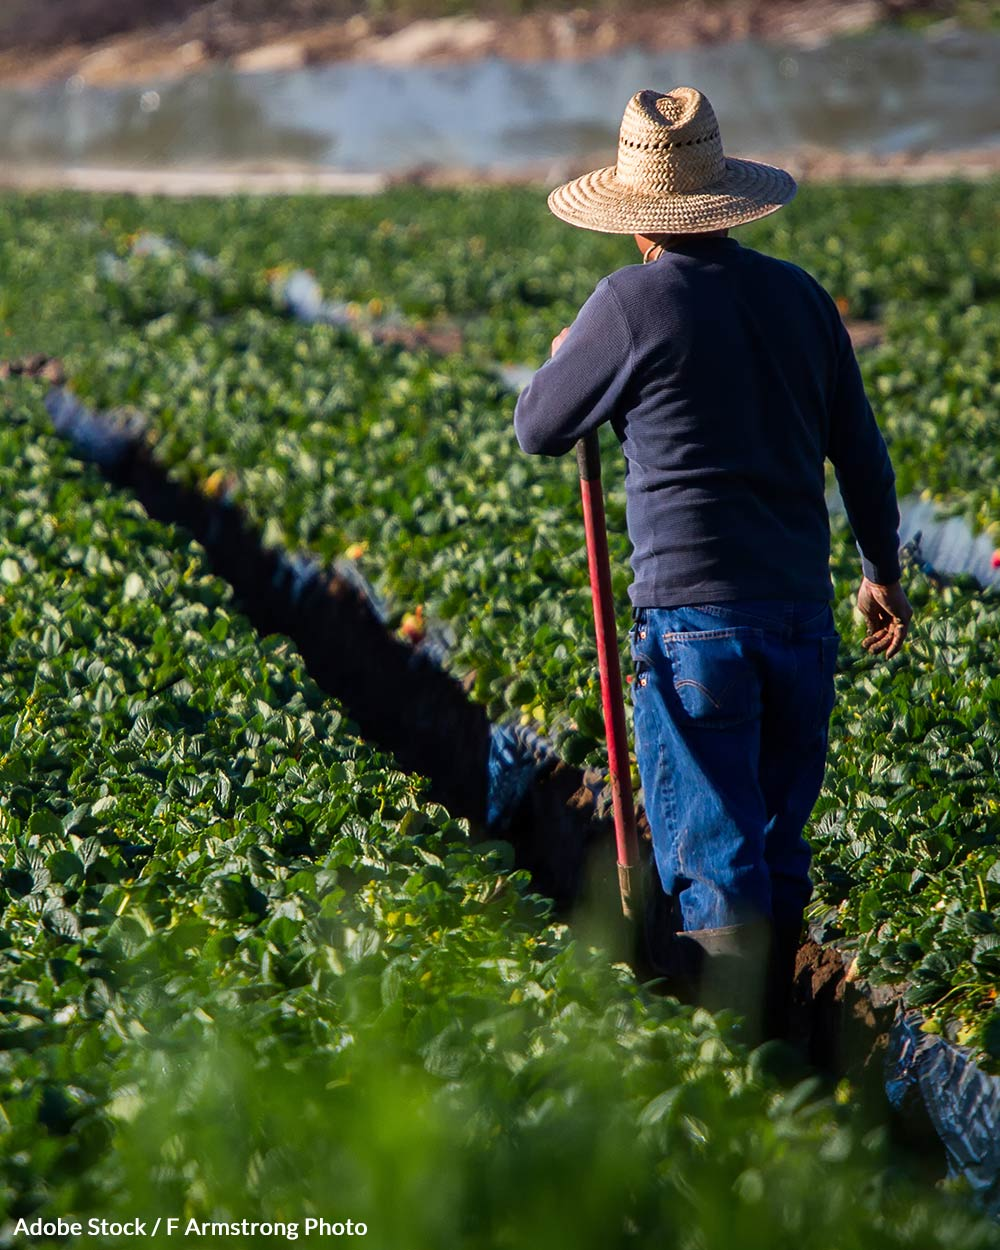 Undocumented workers have few protections in the U.S.